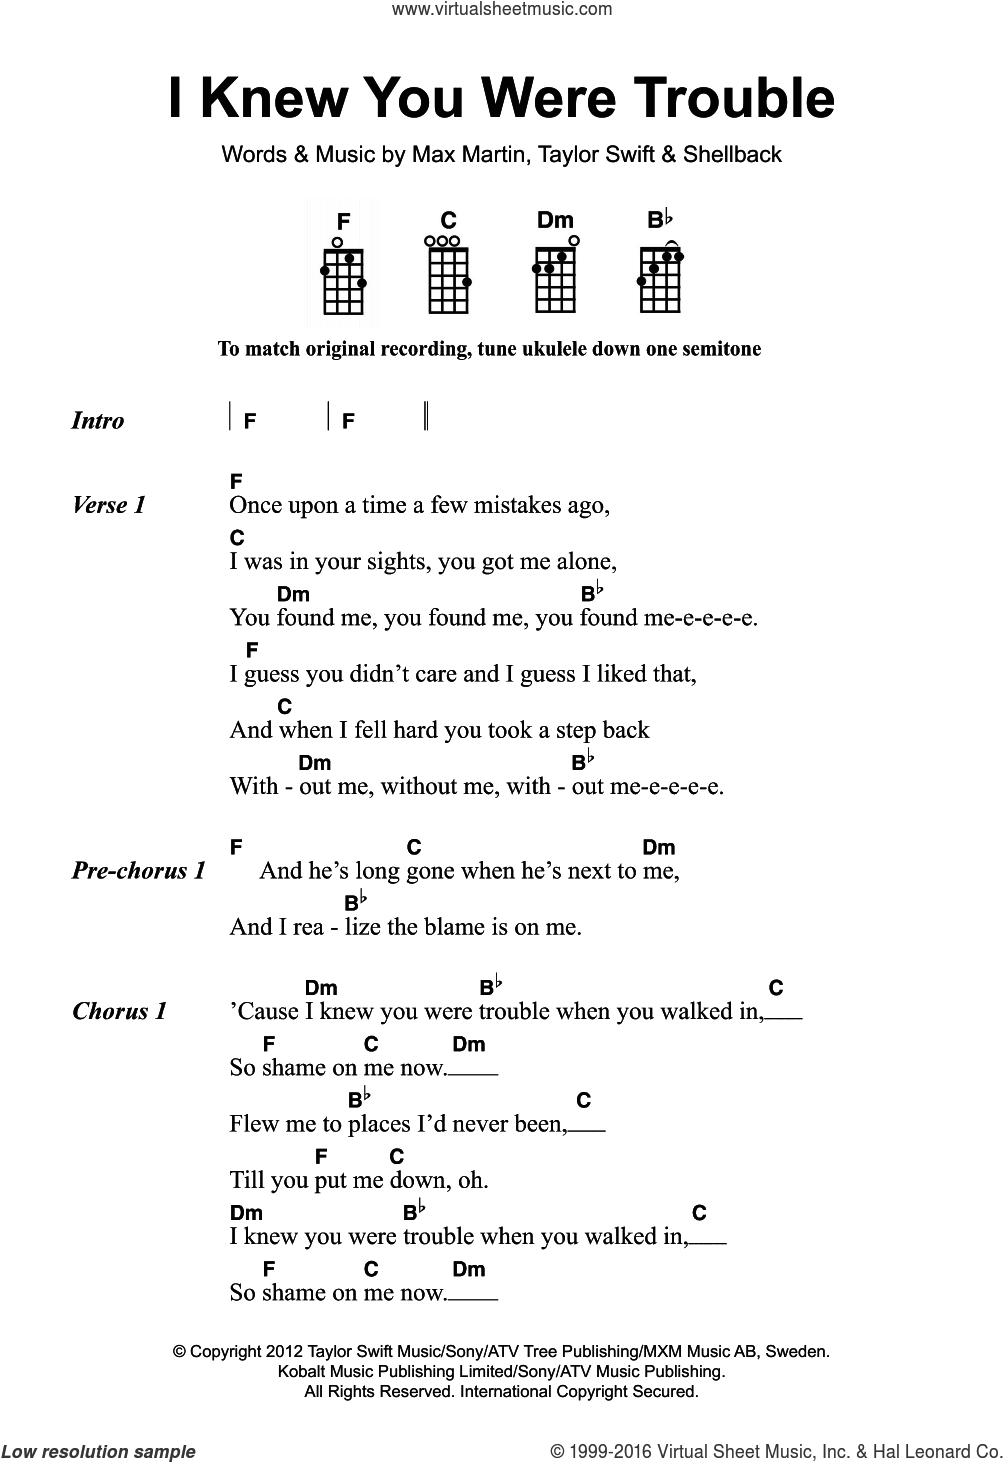 I Knew You Were Trouble sheet music for voice, piano or guitar by Taylor Swift, Max Martin and Shellback, intermediate skill level